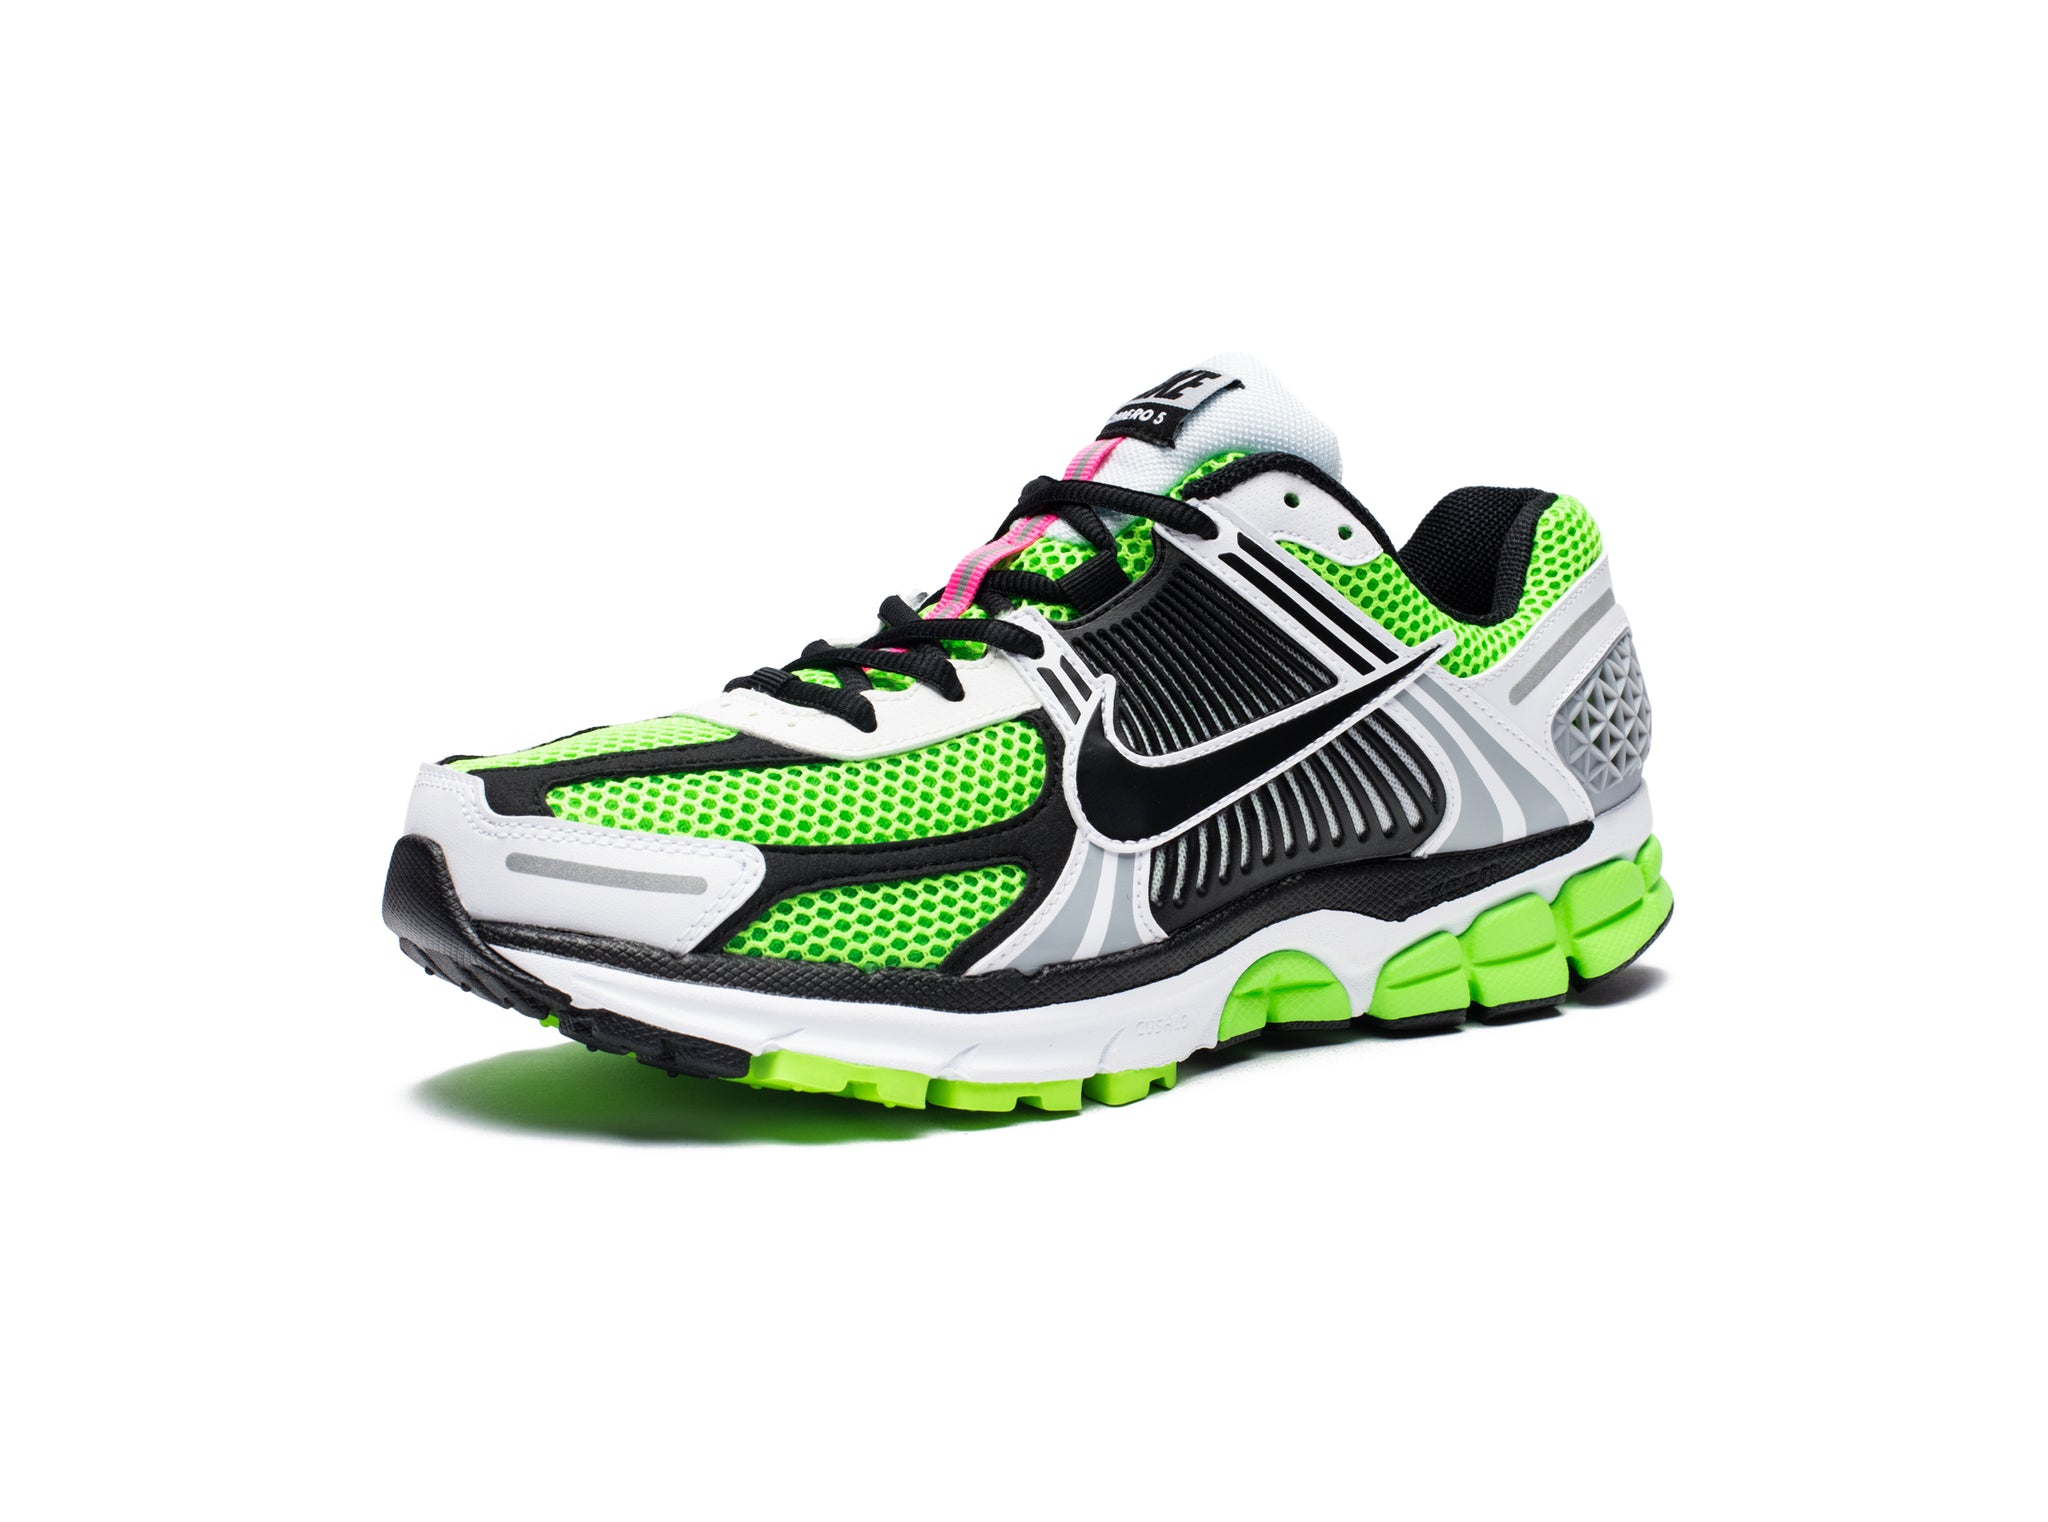 ZOOM VOMERO 5 SE SP - ELECTRICGREEN/BLACK/WHITE/SAIL